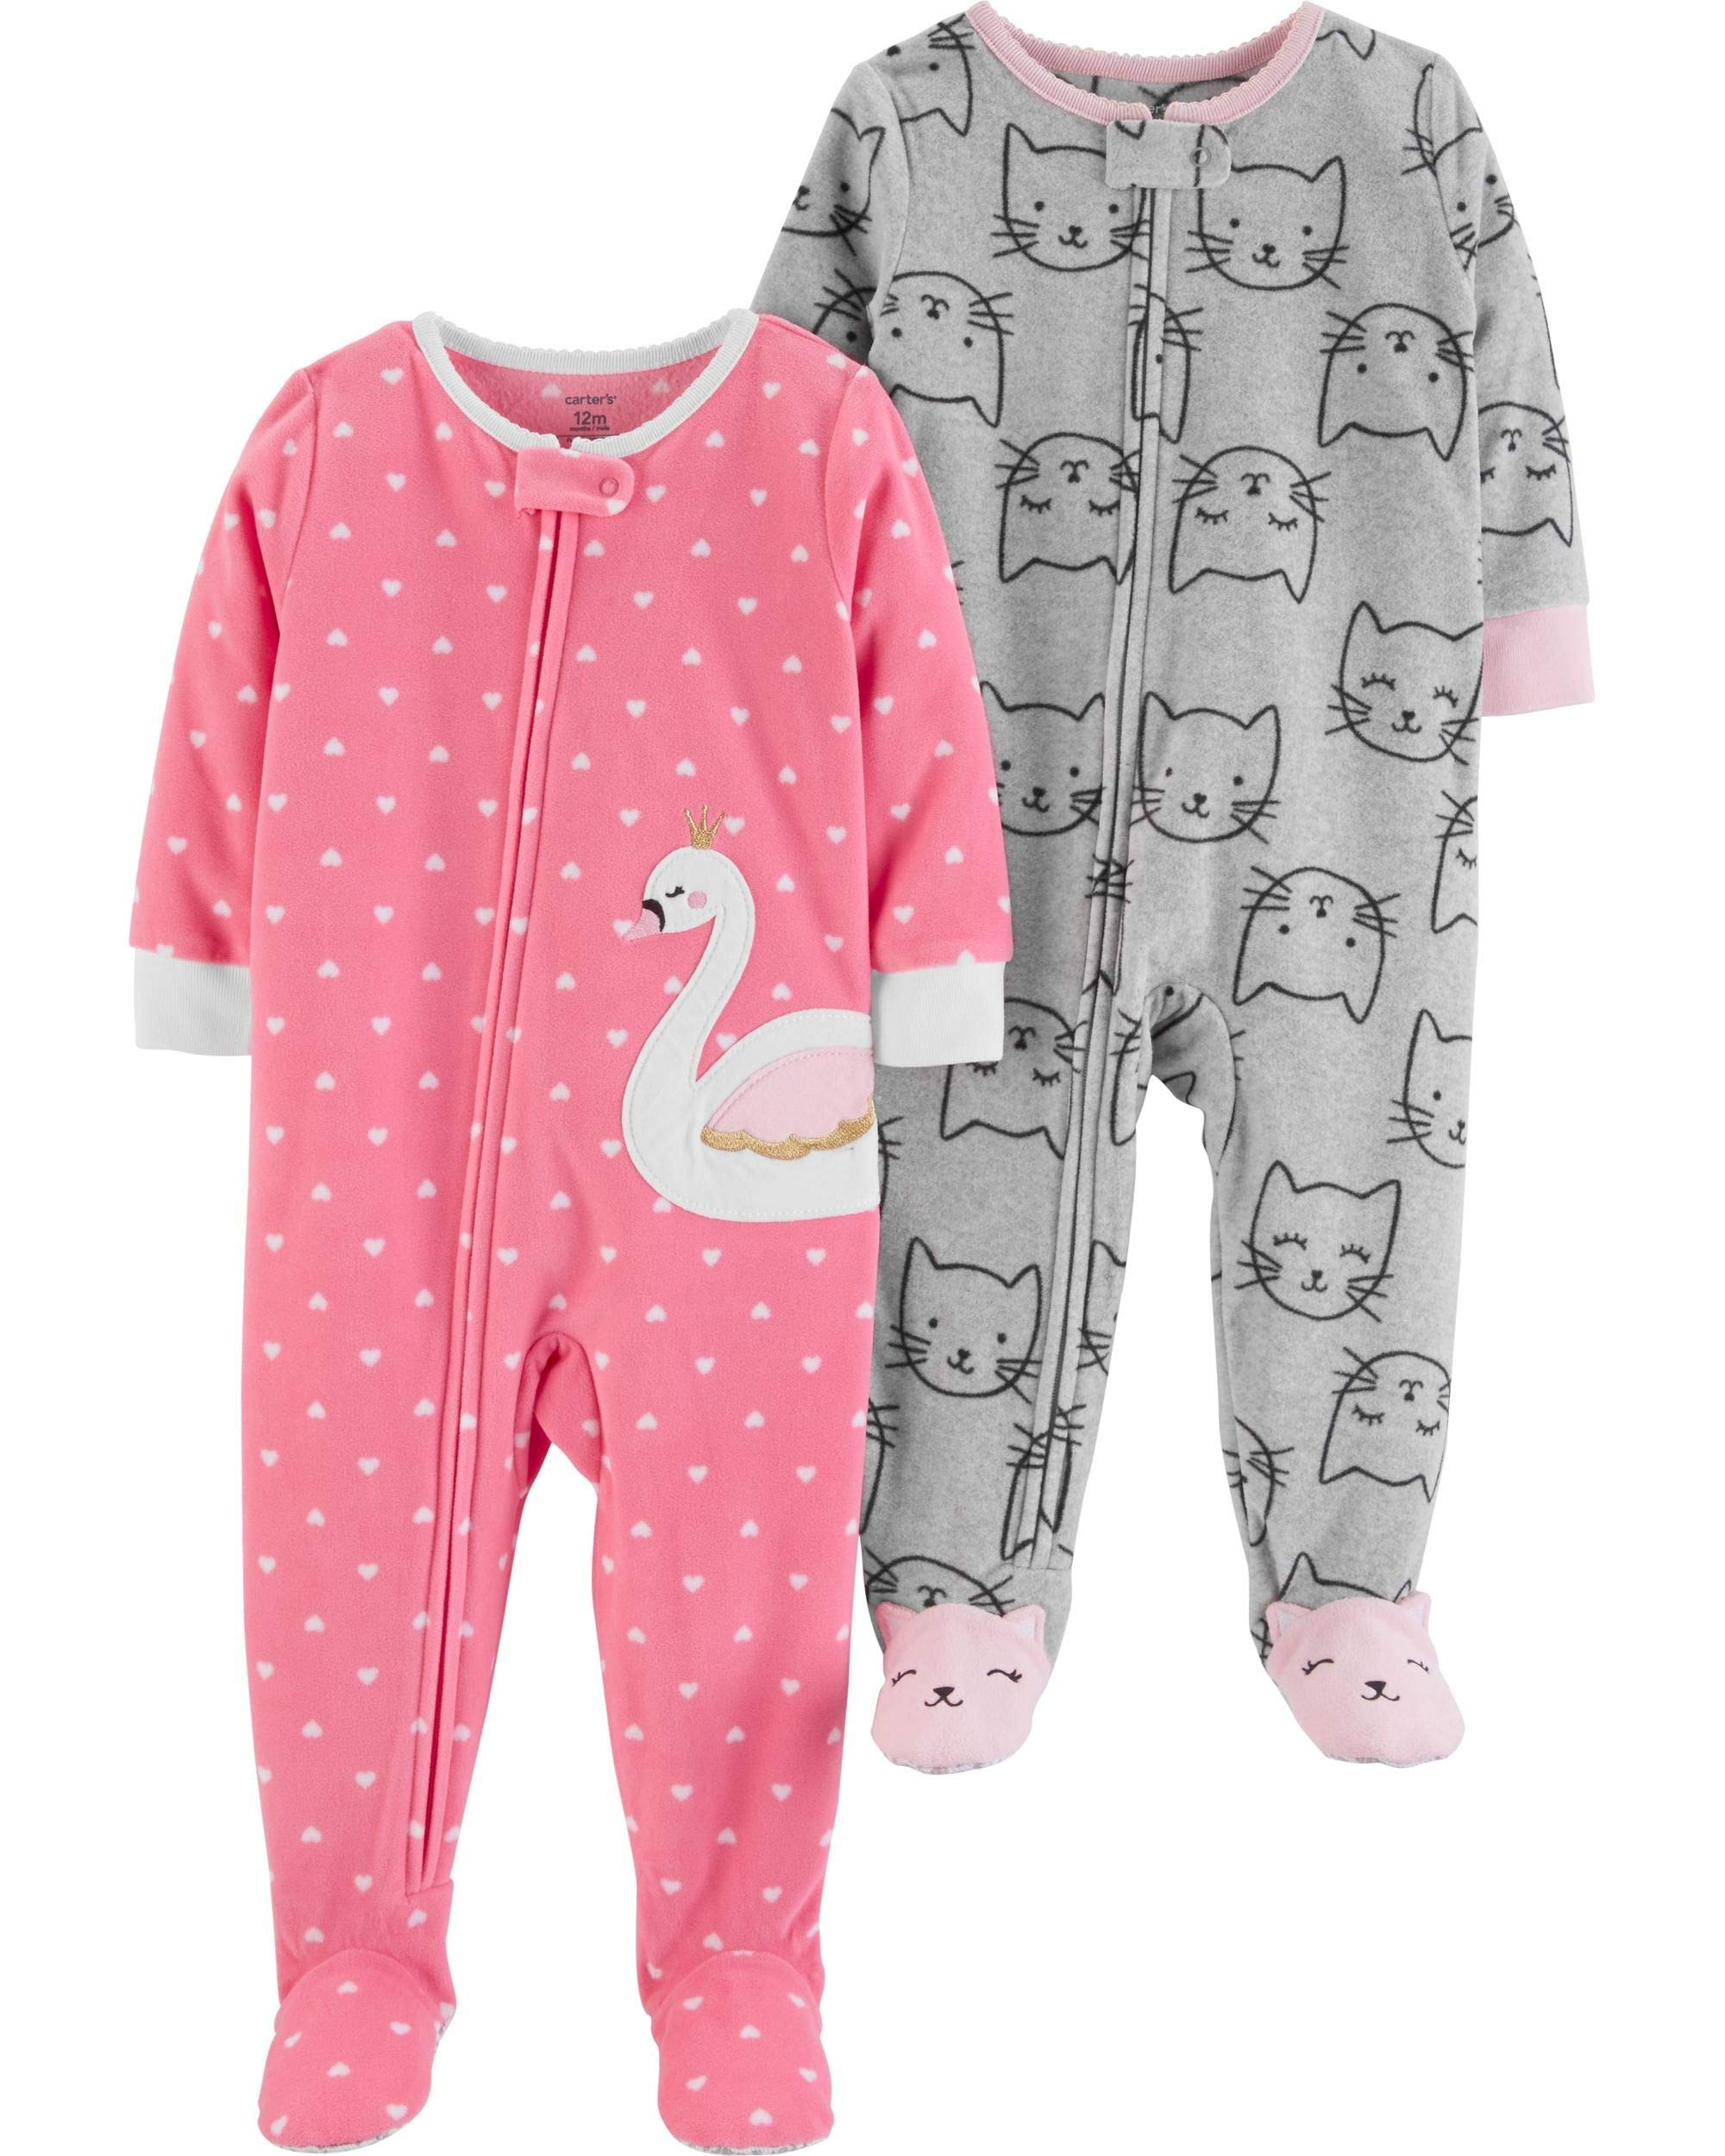 Carter's Baby Girls' 2-Pack Fleece Footed Pajamas (12 Months, Swan/Kitty) by Carter's